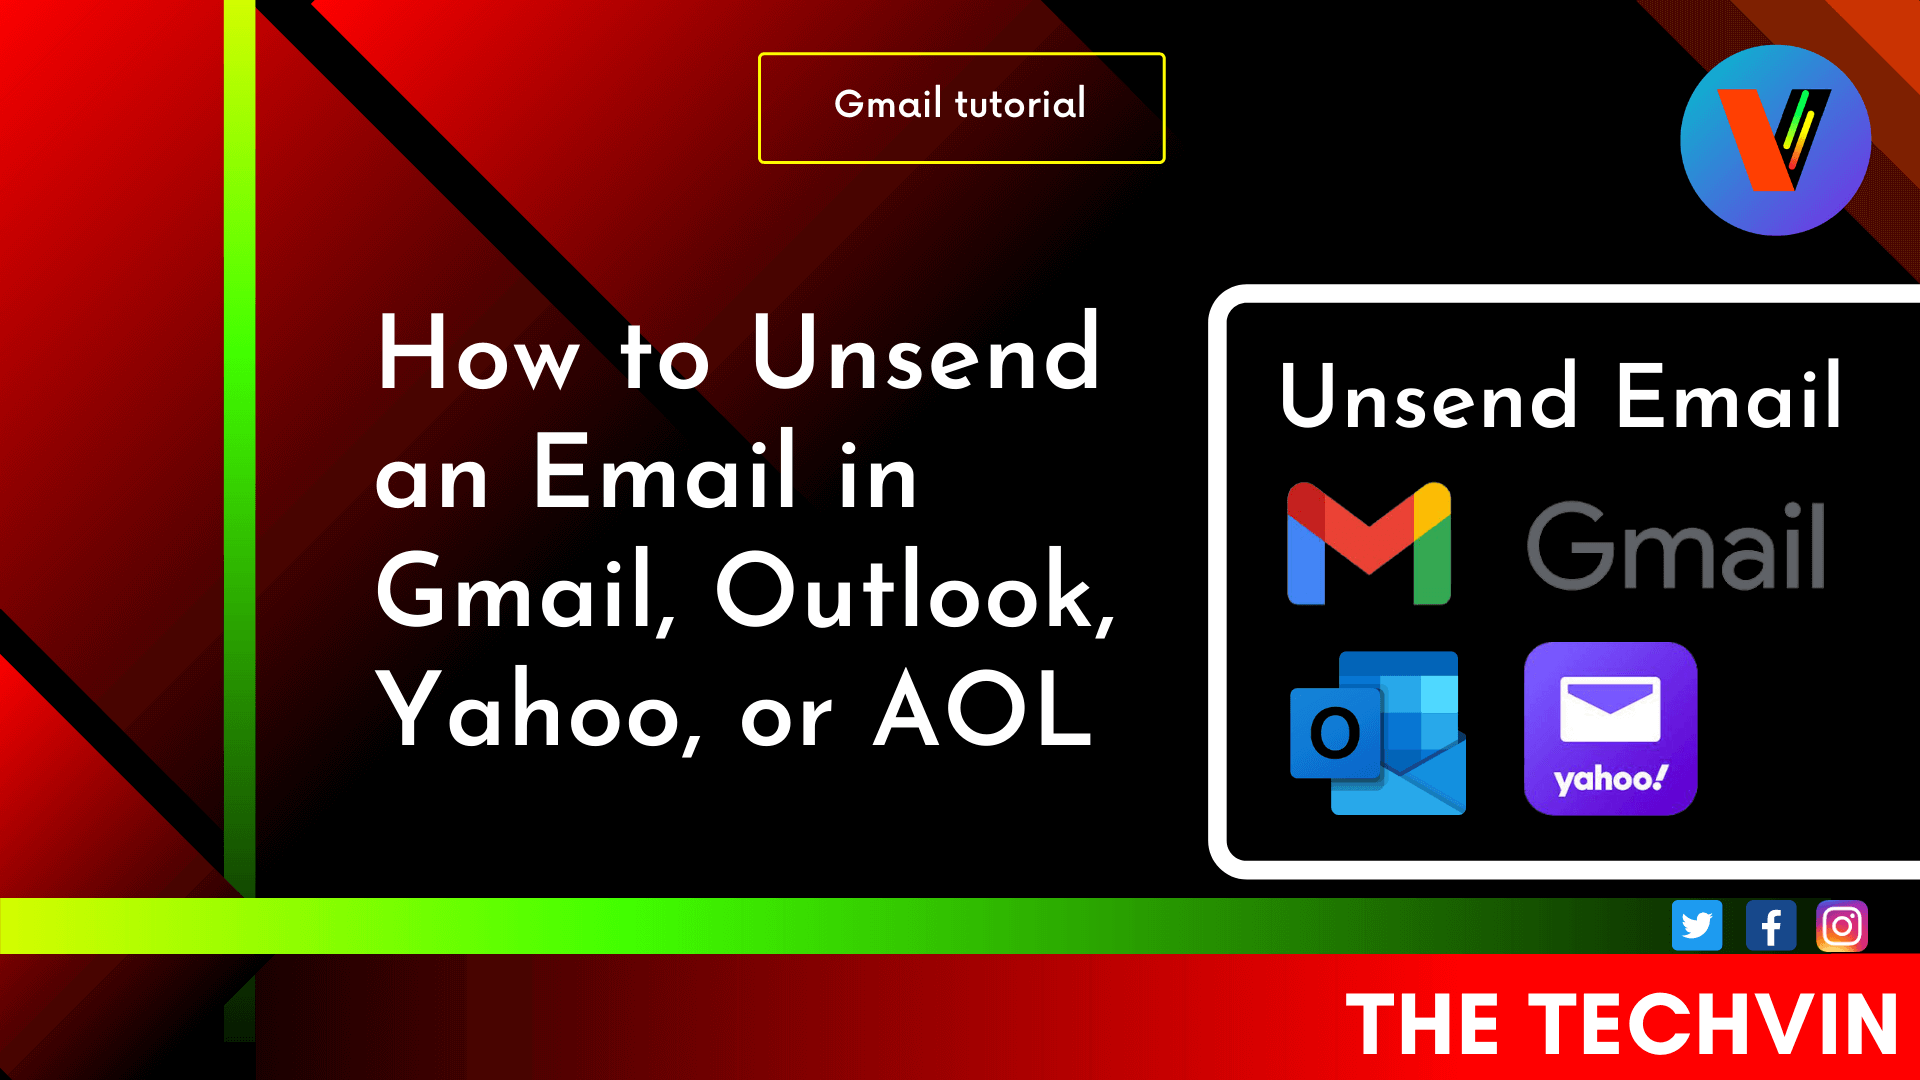 How to Unsend an Email In Gmail, OutLook, Yahoo, and AOL